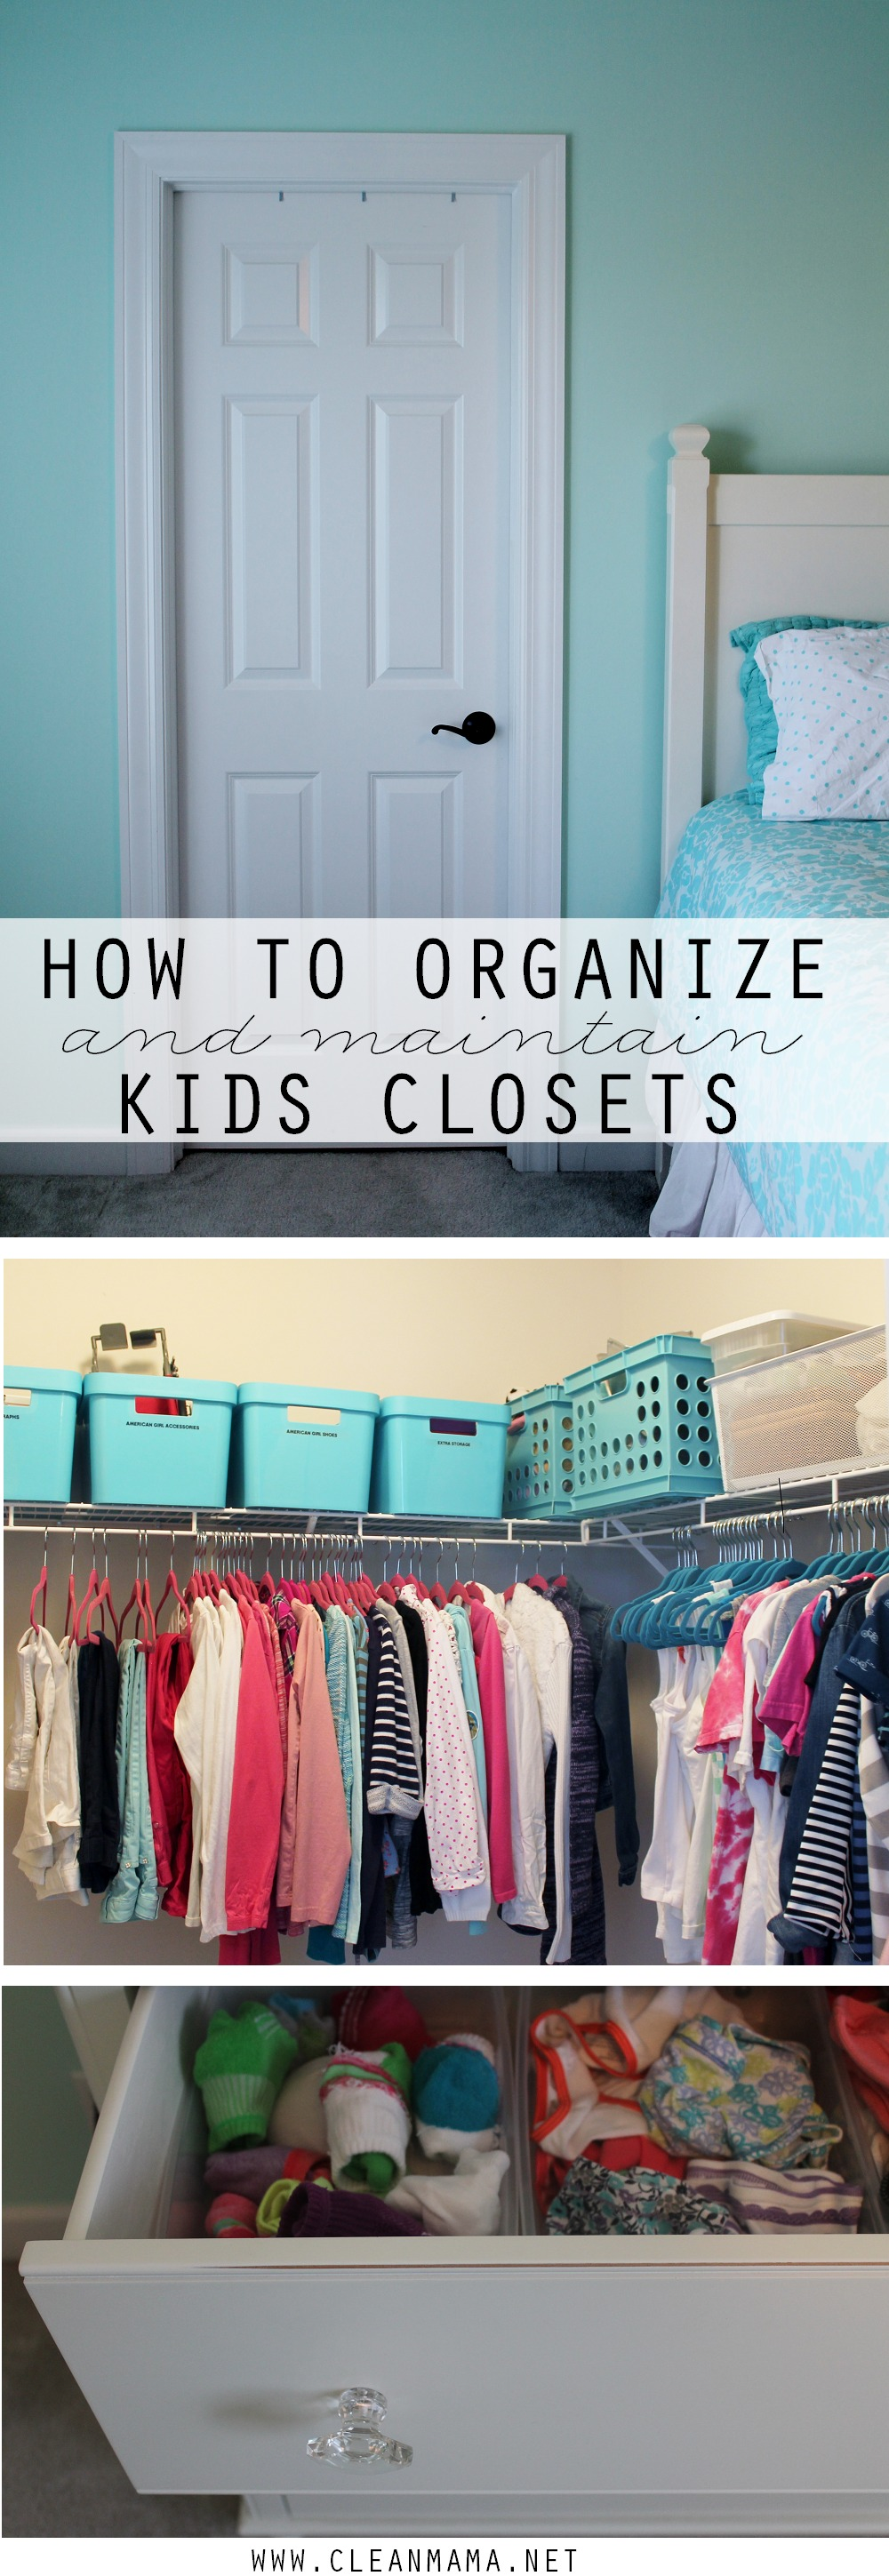 How to Organize and Maintain Kids Closets via Clean Mama